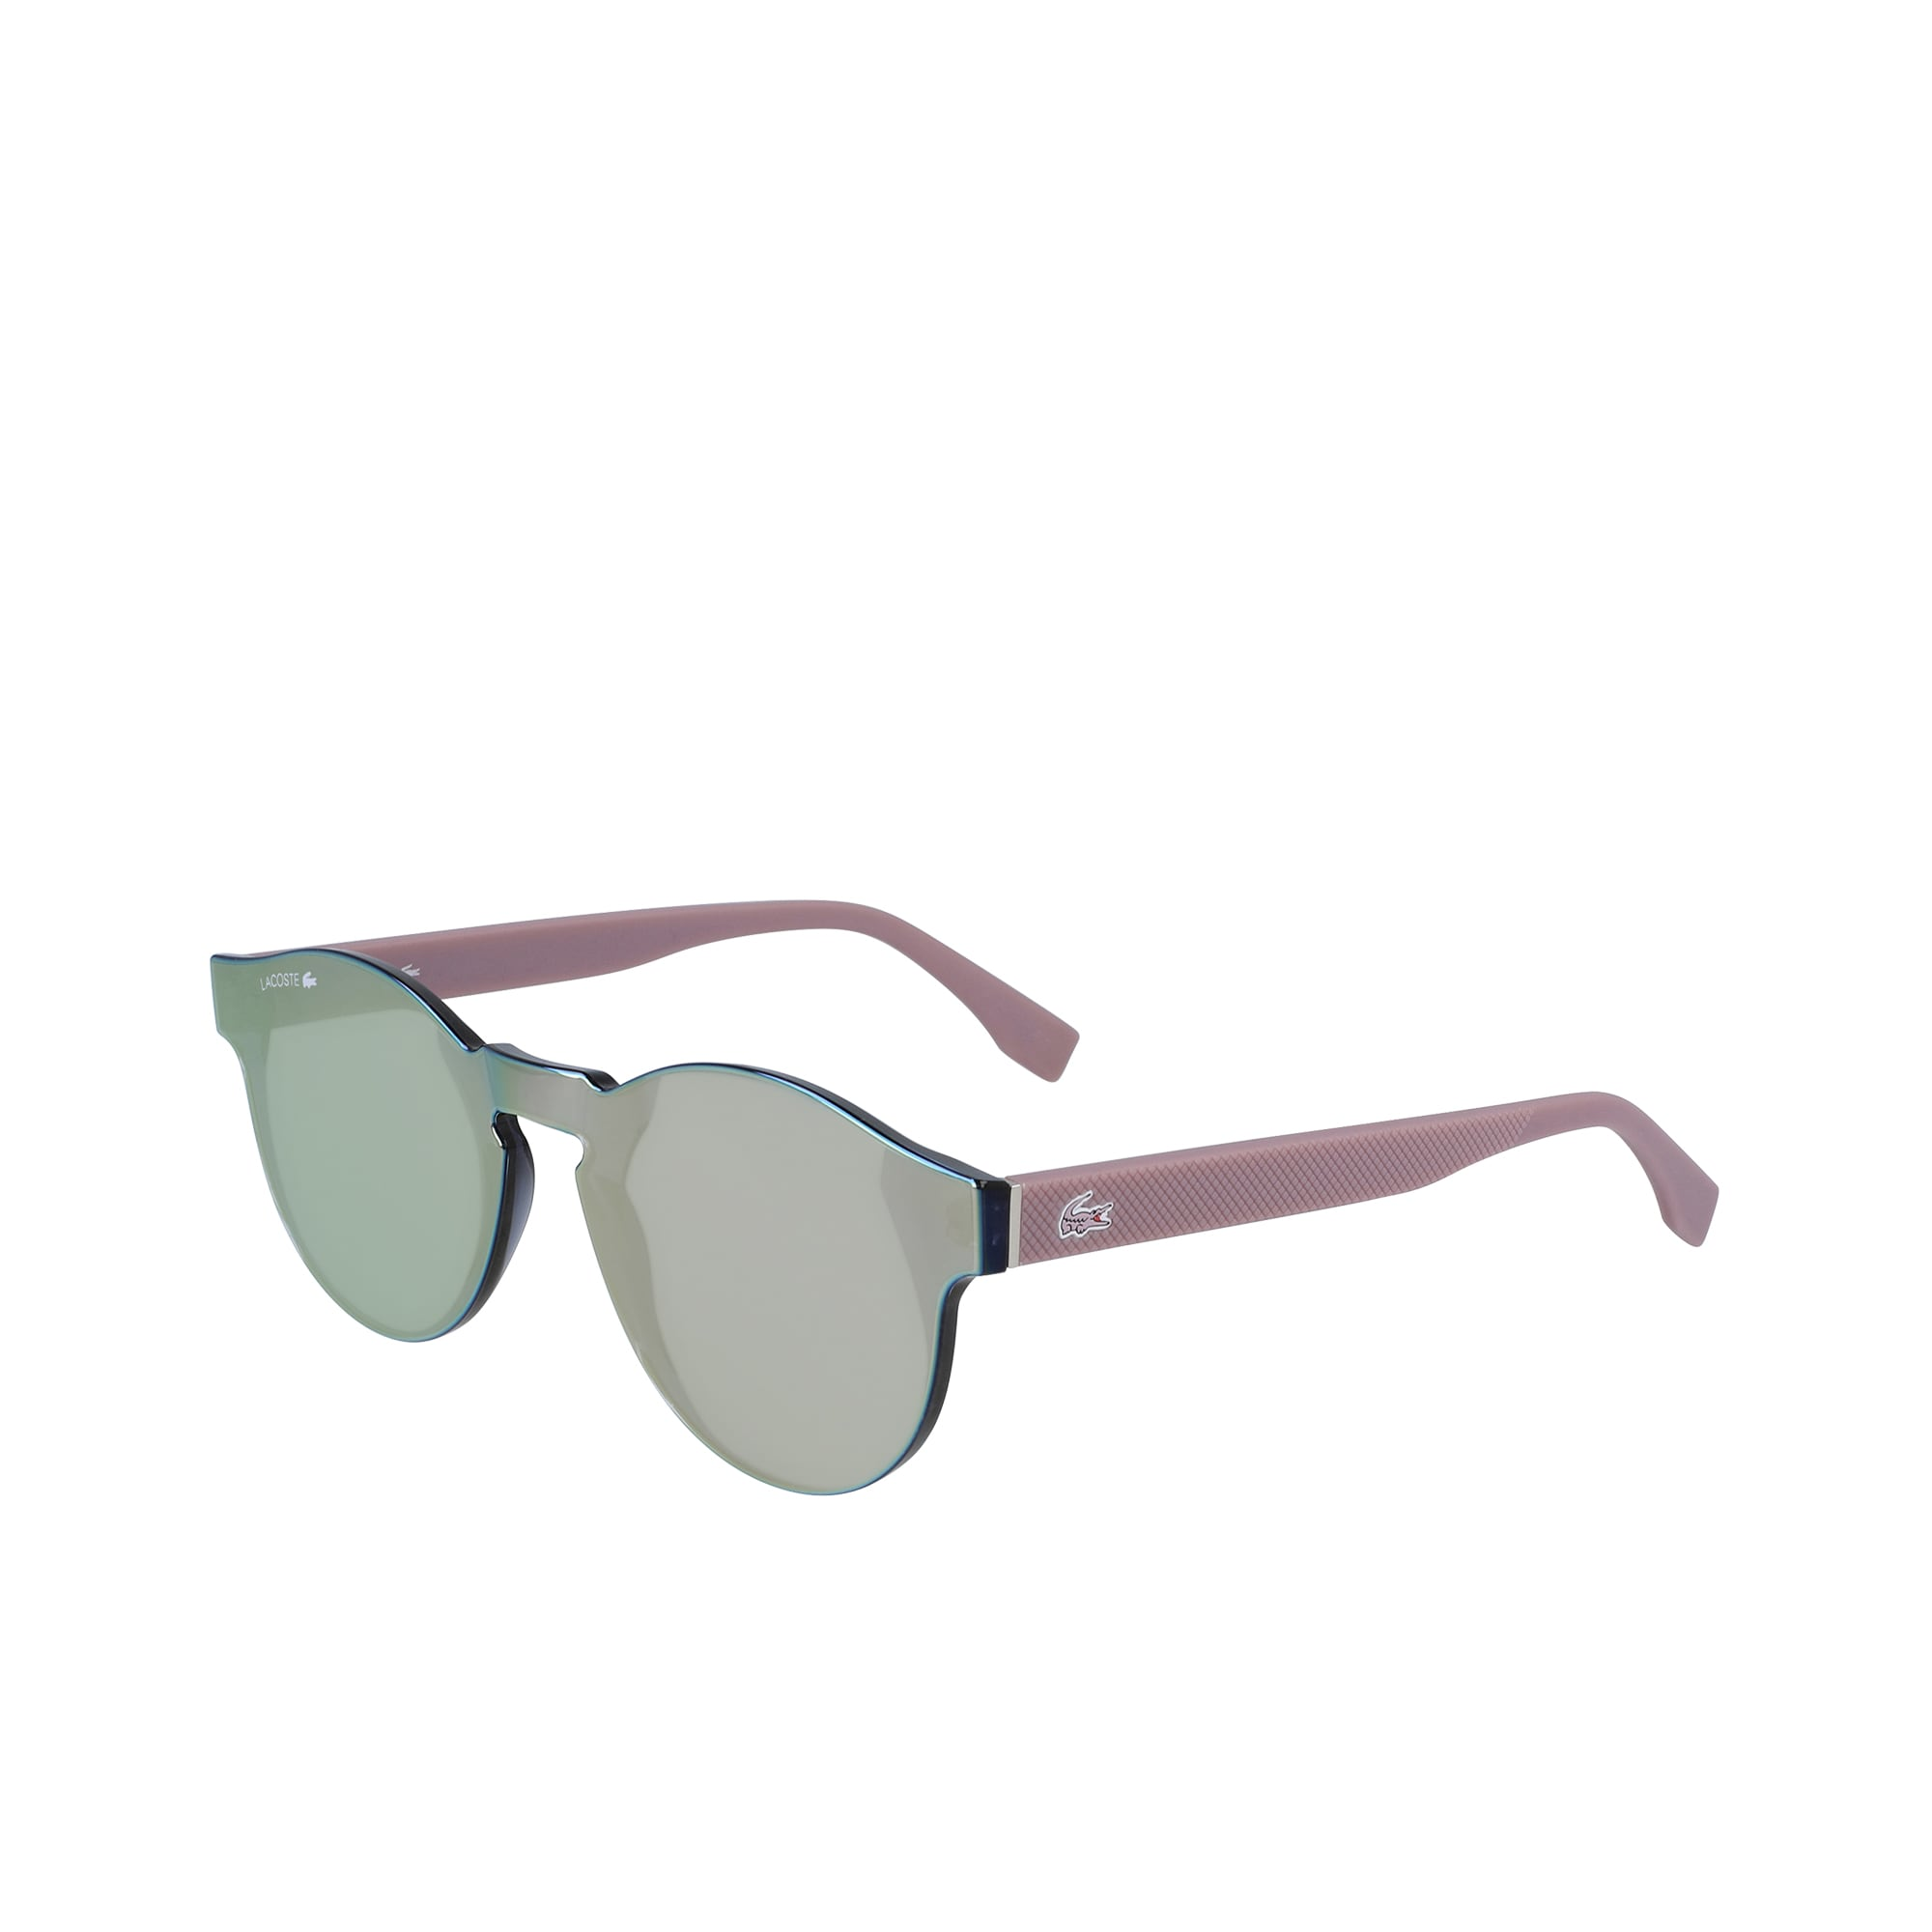 4a9a1cf83c89 Sunglasses for men